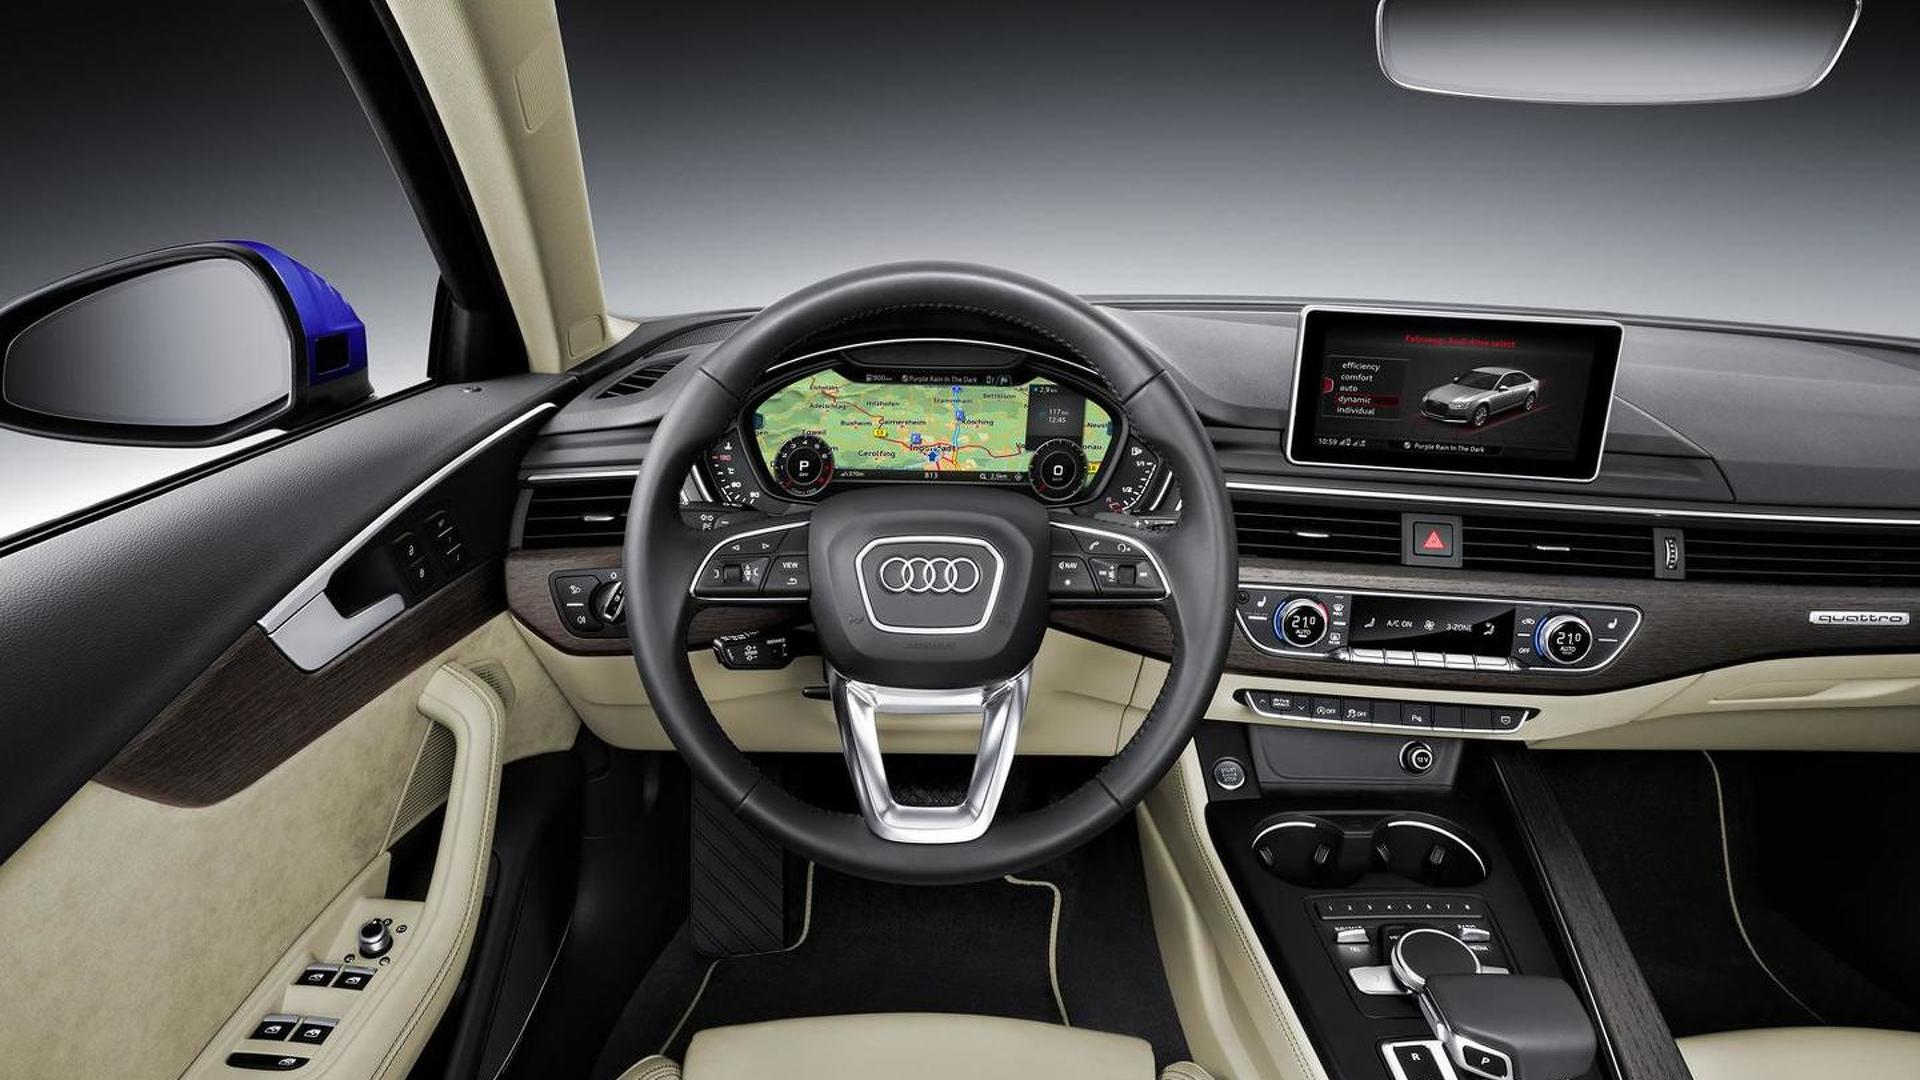 Audi A4 Sedan priced in Germany from €30,650